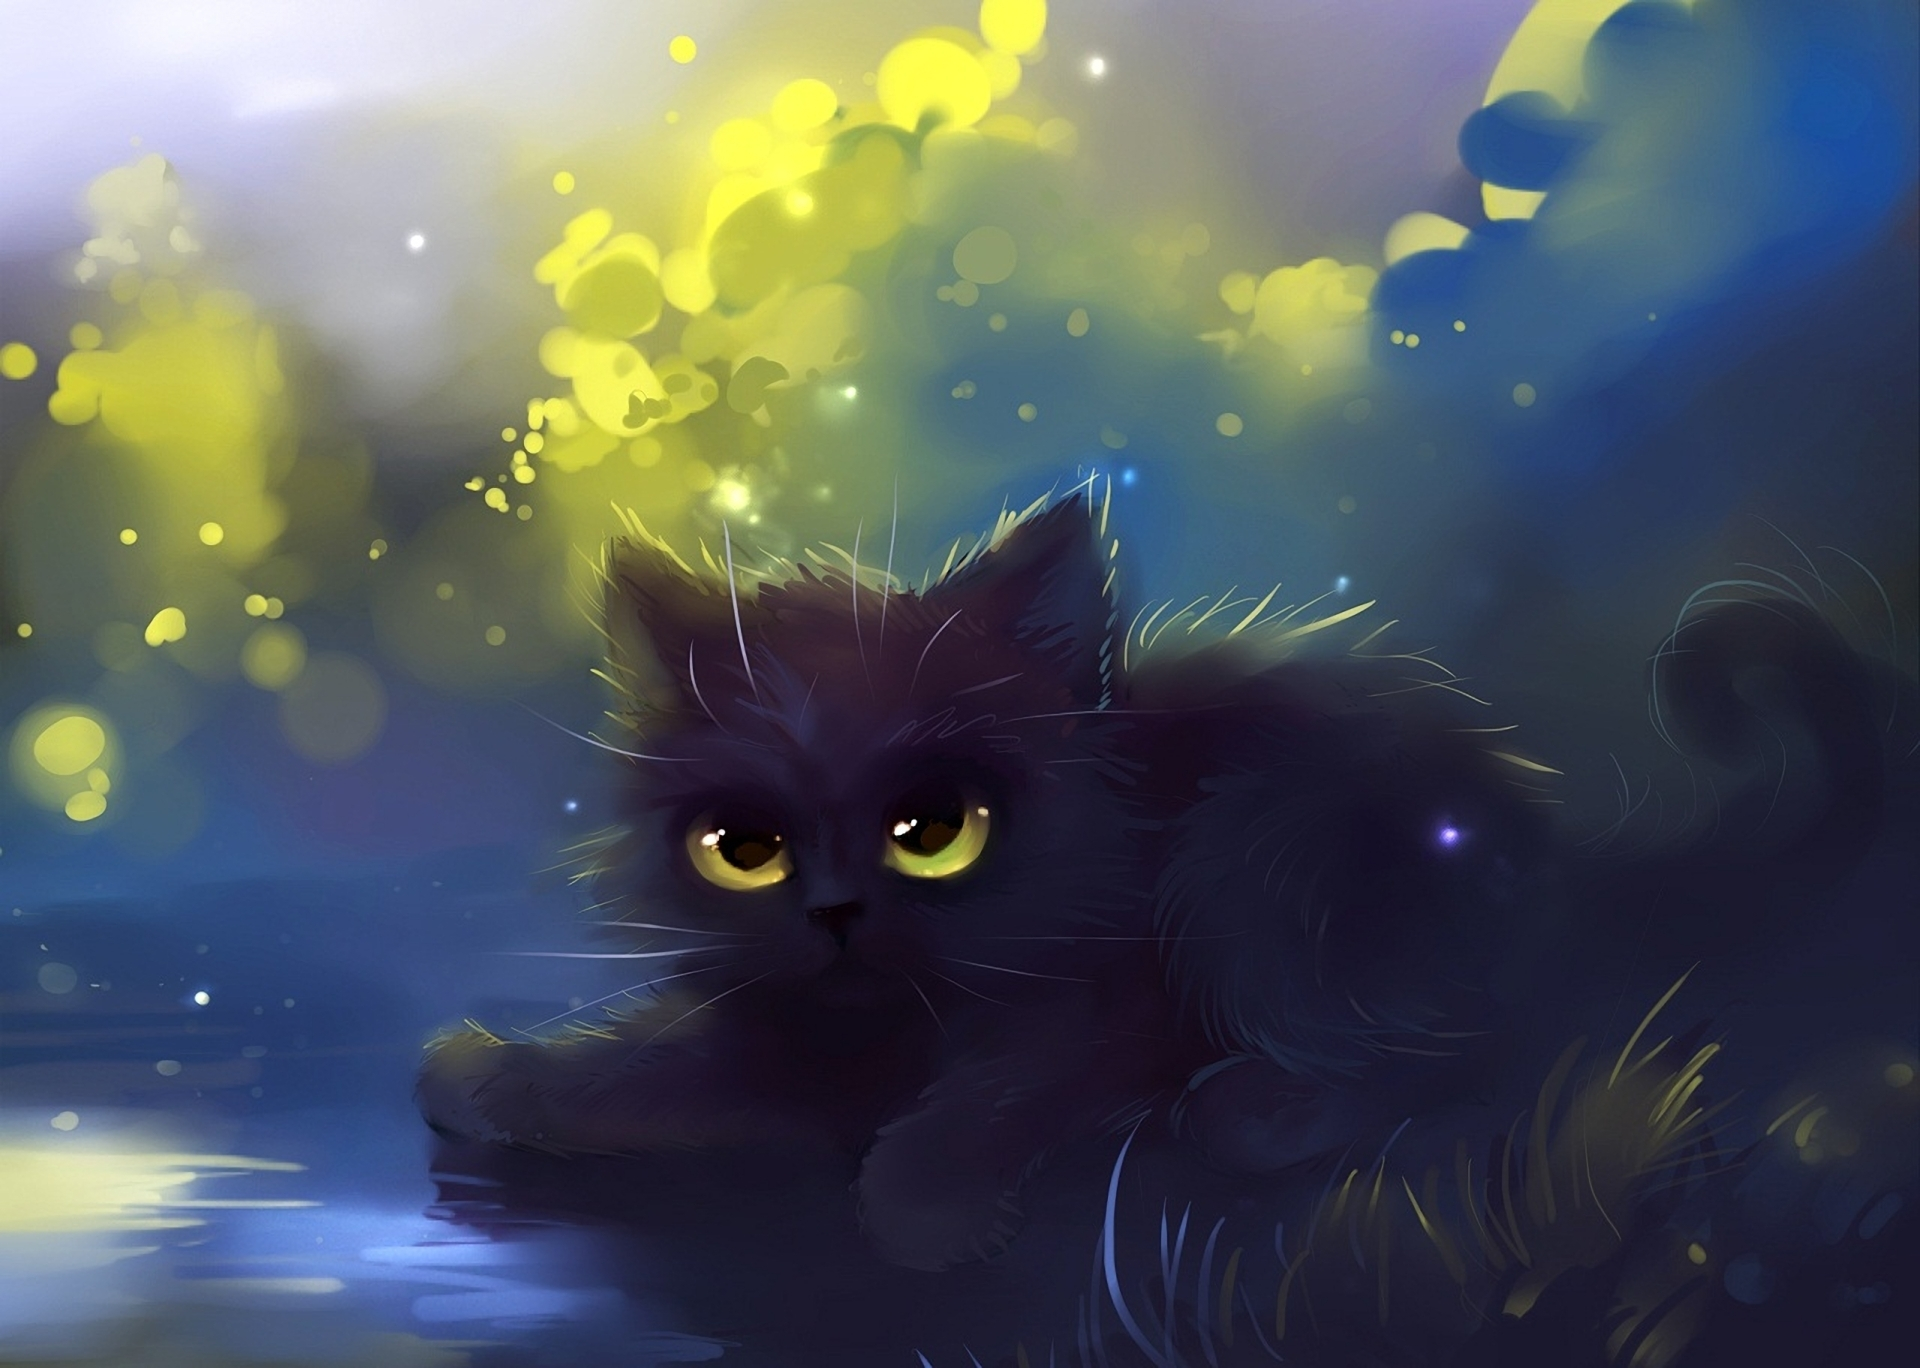 40 cute anime cat wallpaper on wallpapersafari - Anime cat wallpaper ...